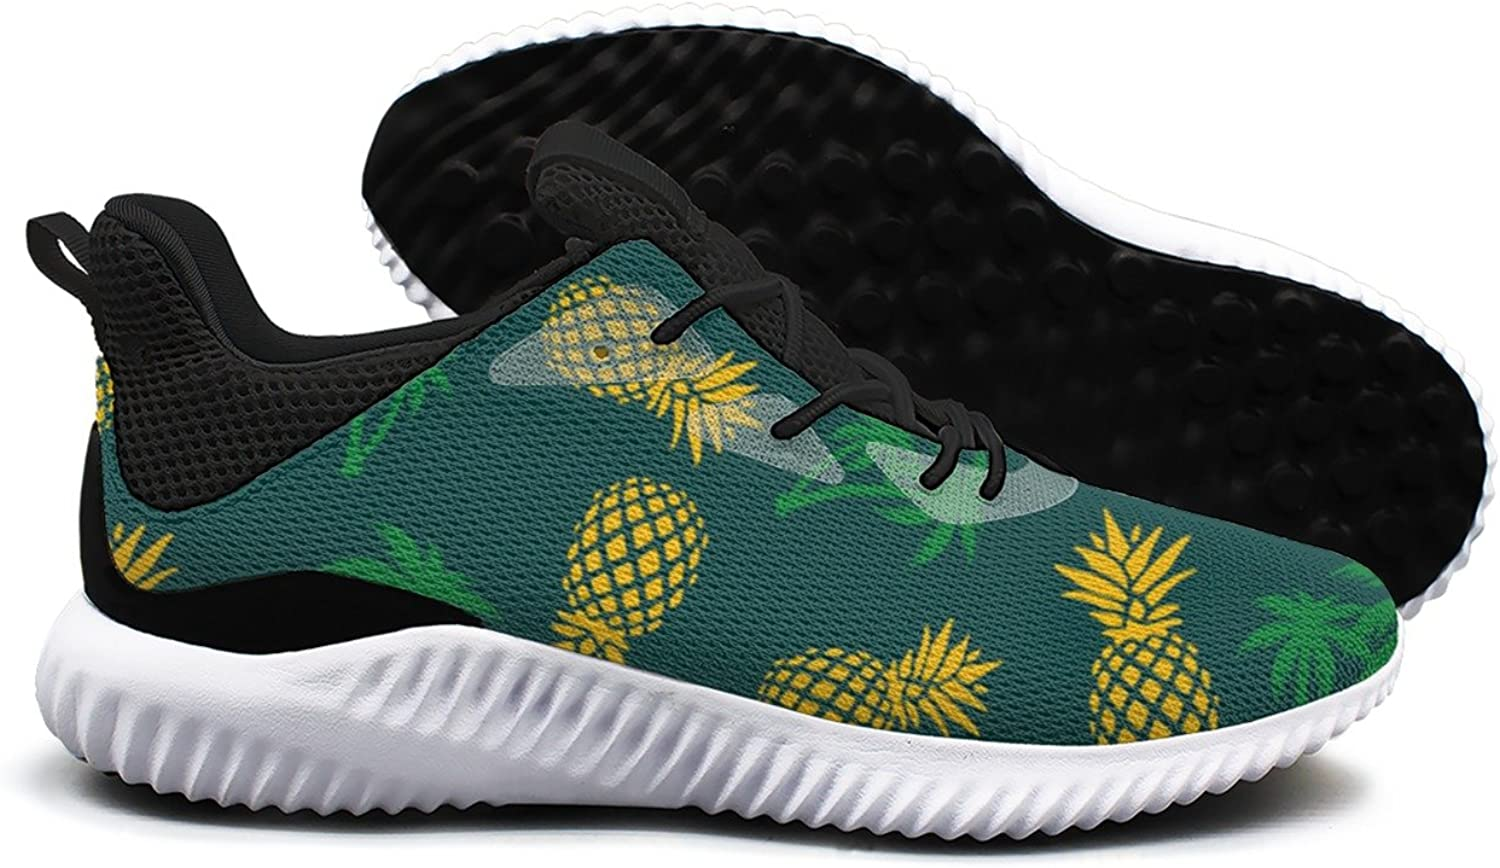 Pineapple and Palm Tree Leisure Sports Running shoes Woman Net Funny Gift